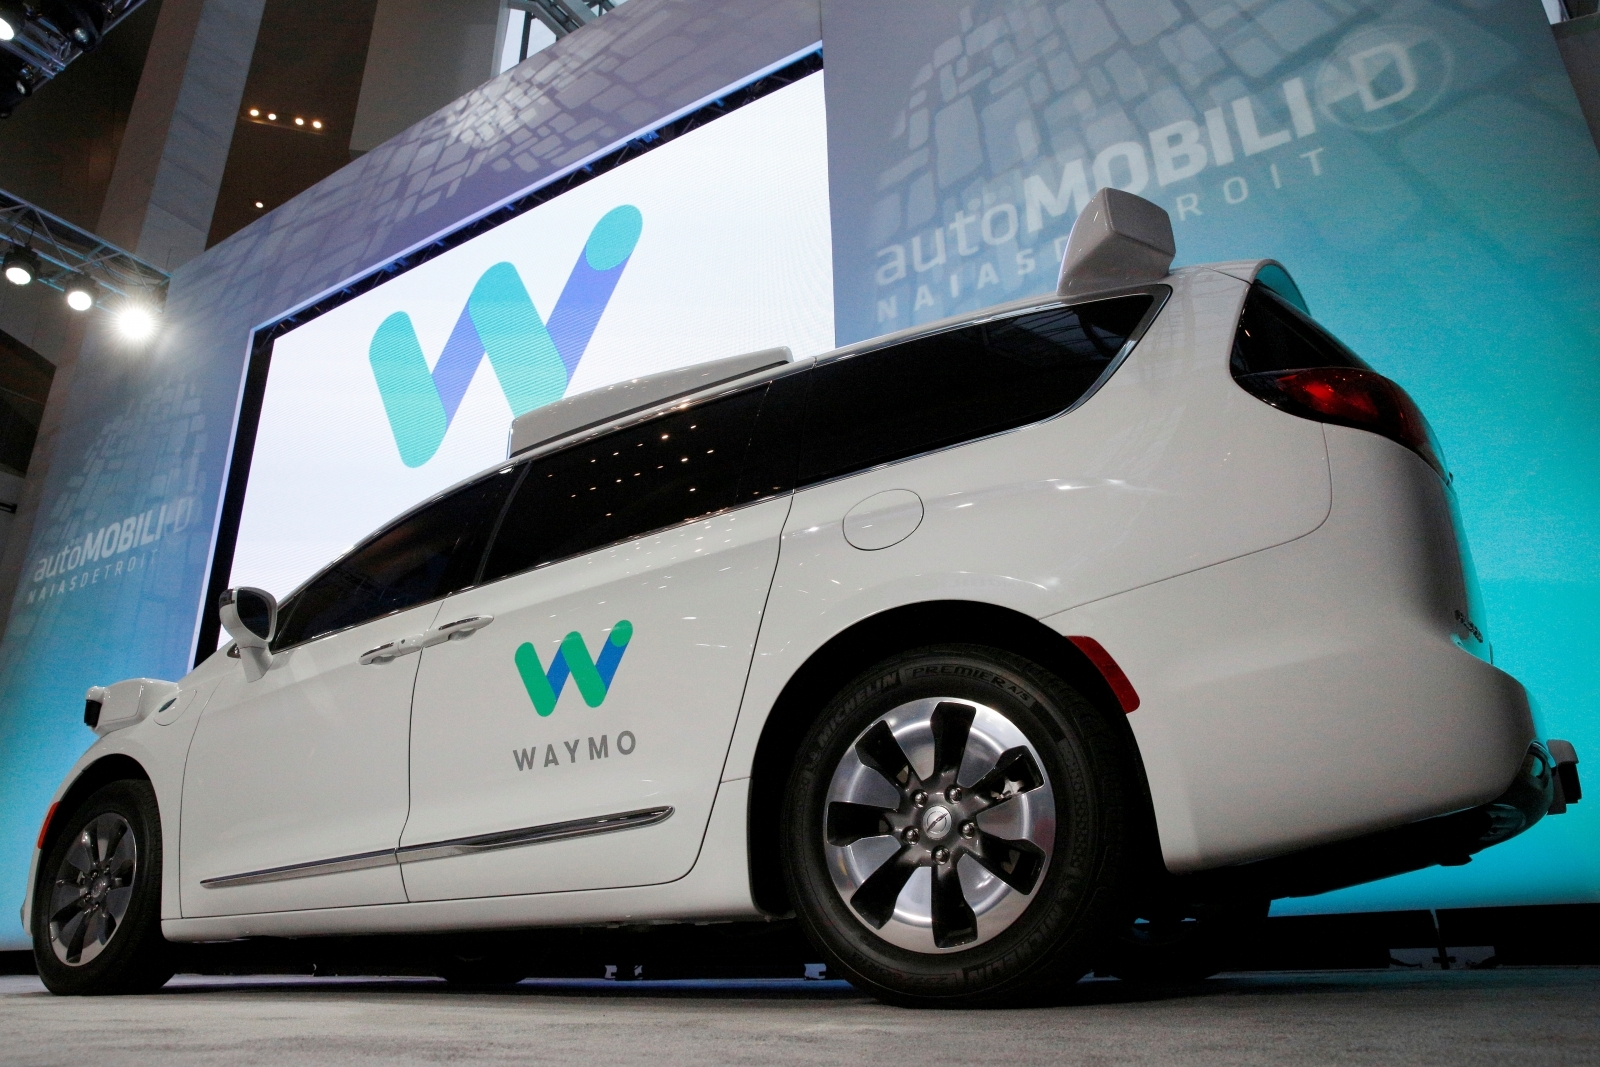 Waymo's lawsuit against Uber is delayed to December